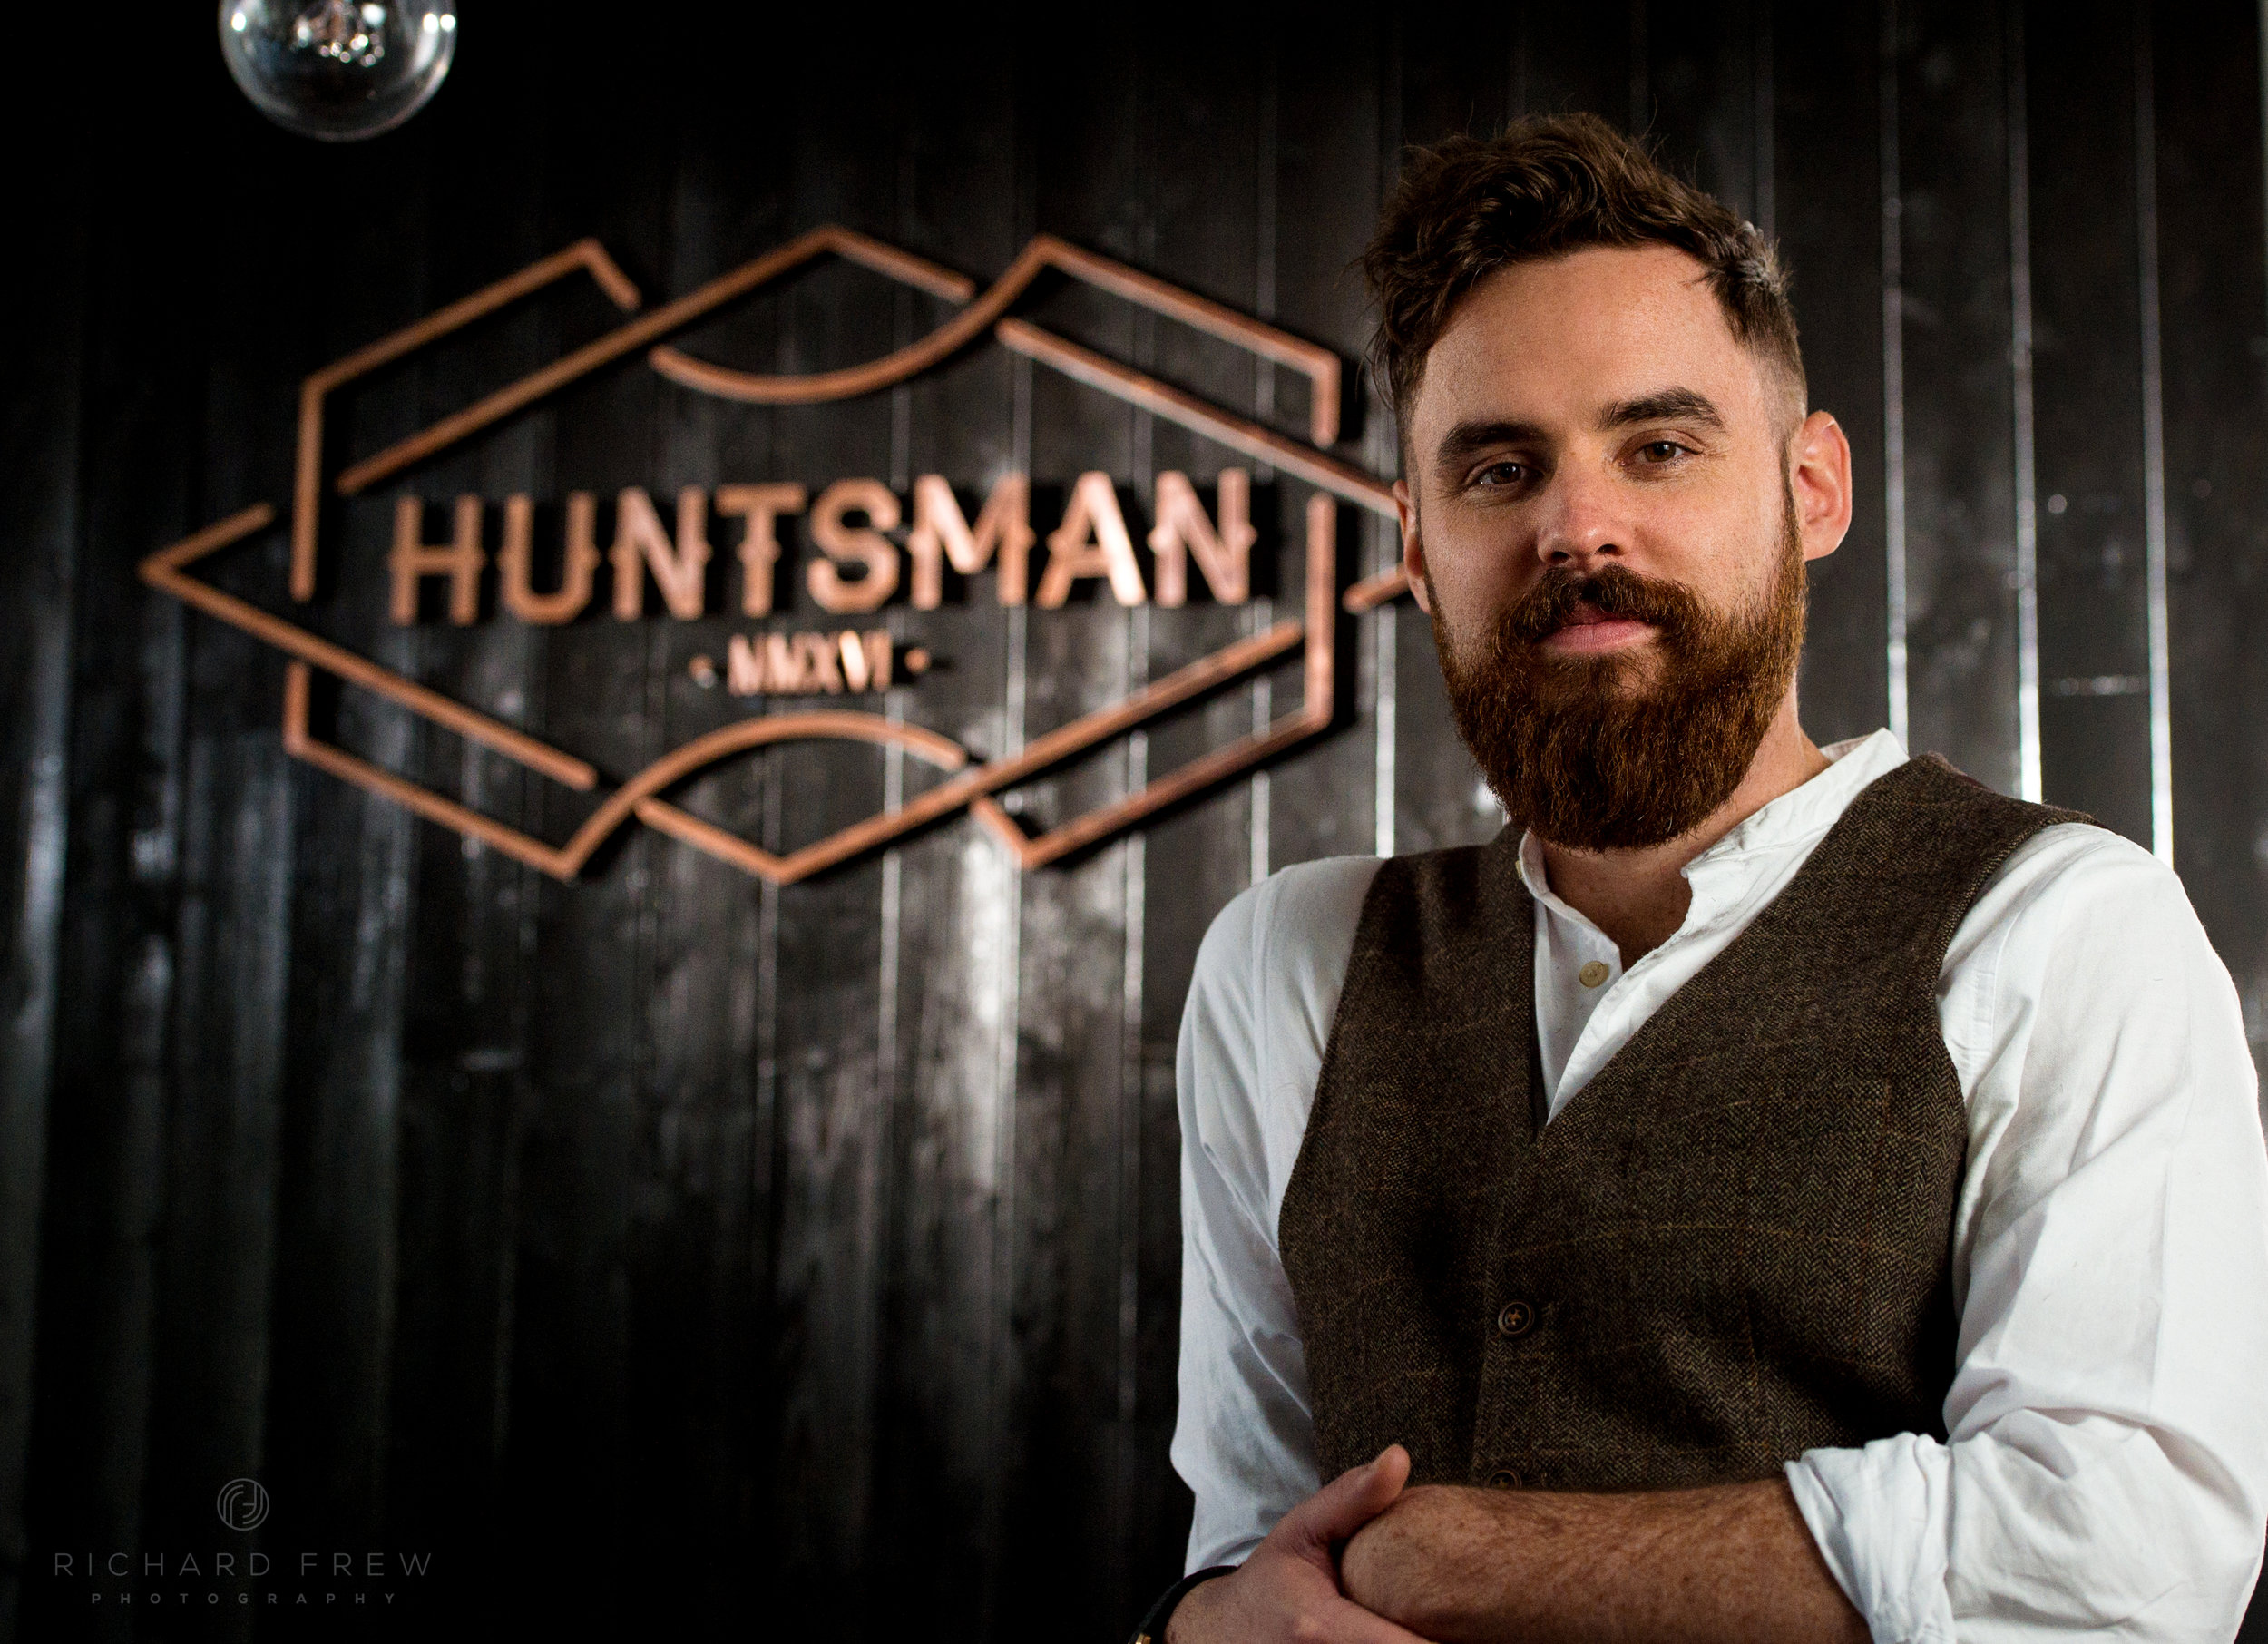 Huntsman website4.jpg